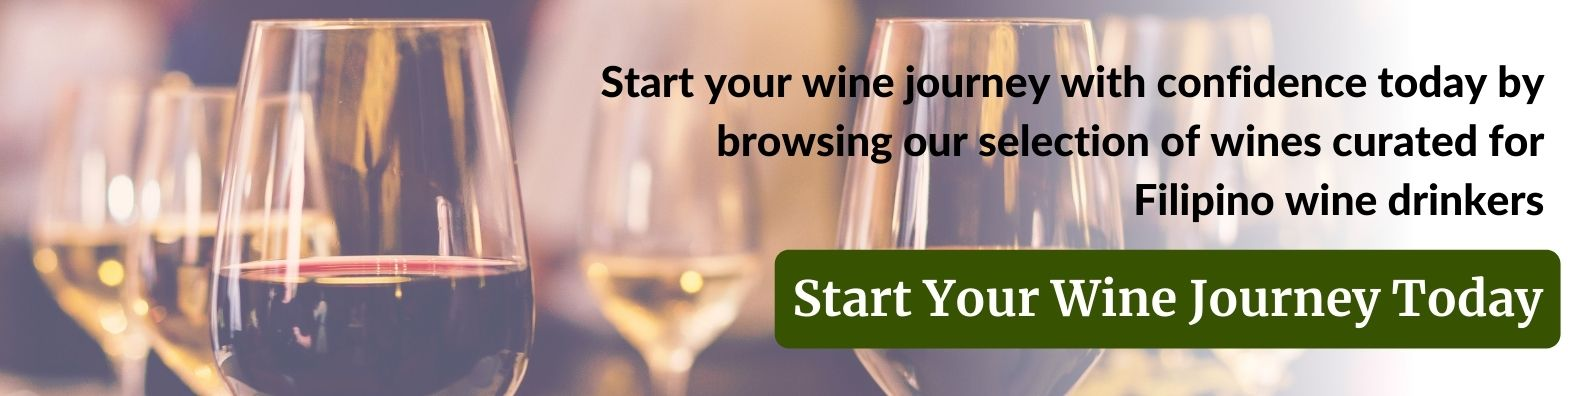 buy wine in the Philippines with confidence